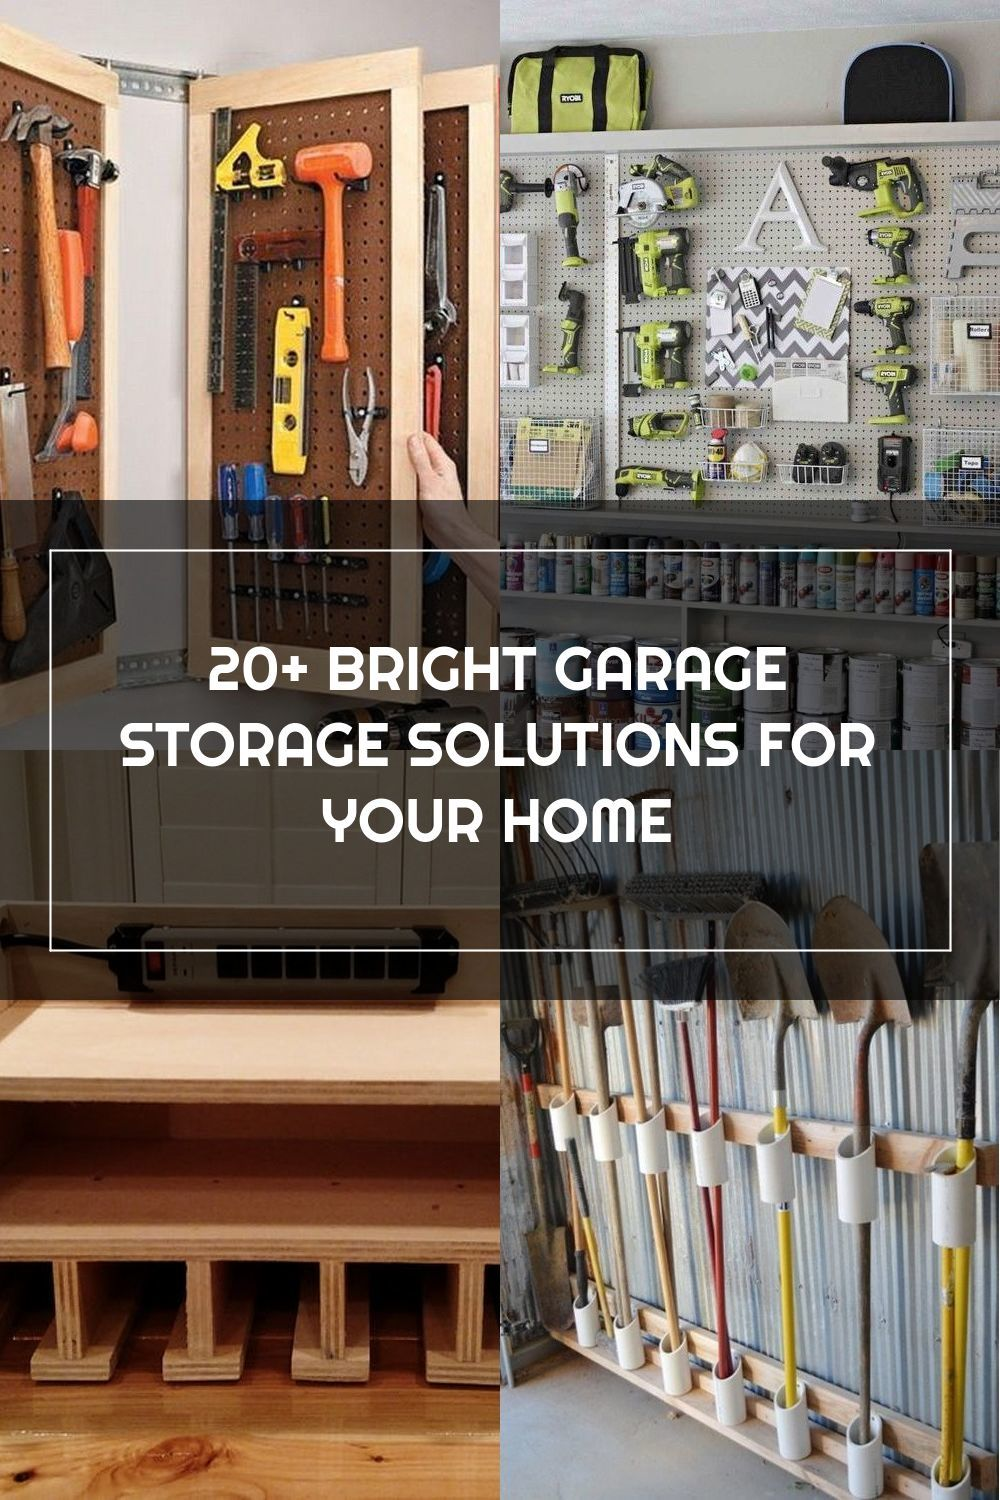 20+ BRIGHT GARAGE STORAGE SOLUTIONS FOR YOUR HOME #garage #homedesign #homedesignideas